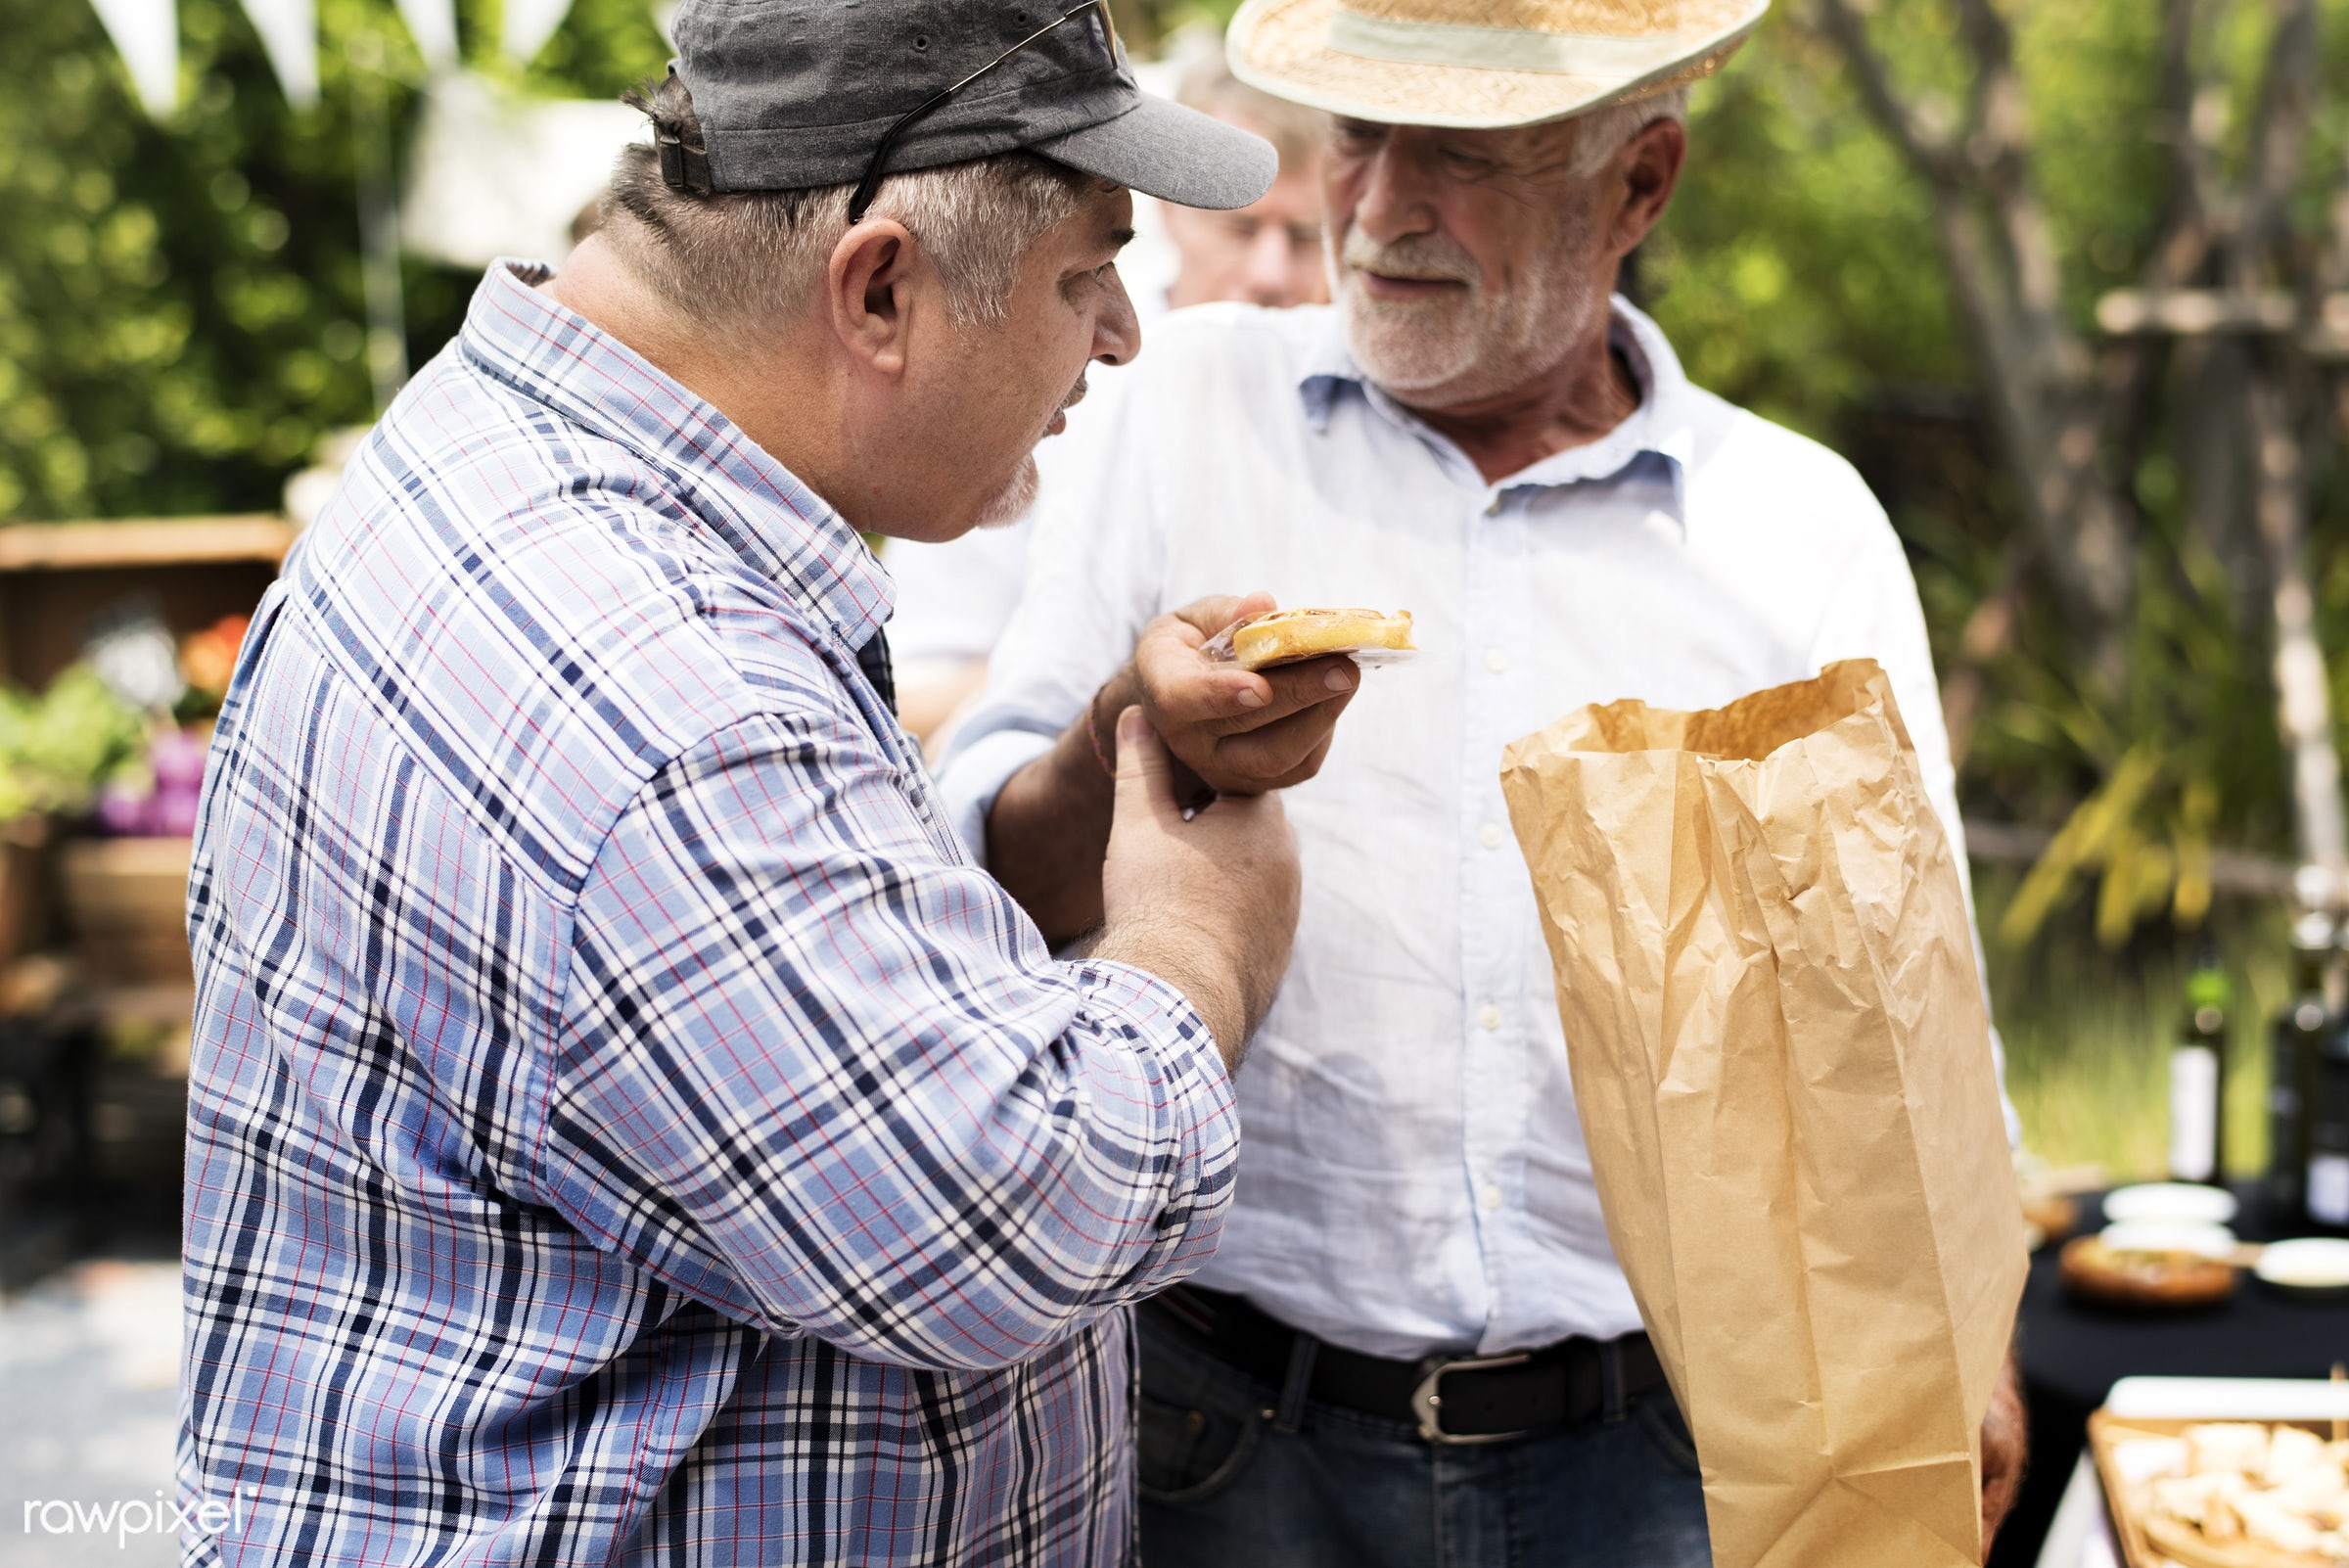 shop, person, stall, pastries, buy, holding, homemade, people, together, caucasian, retirement, roll, friends, bakery, bread...